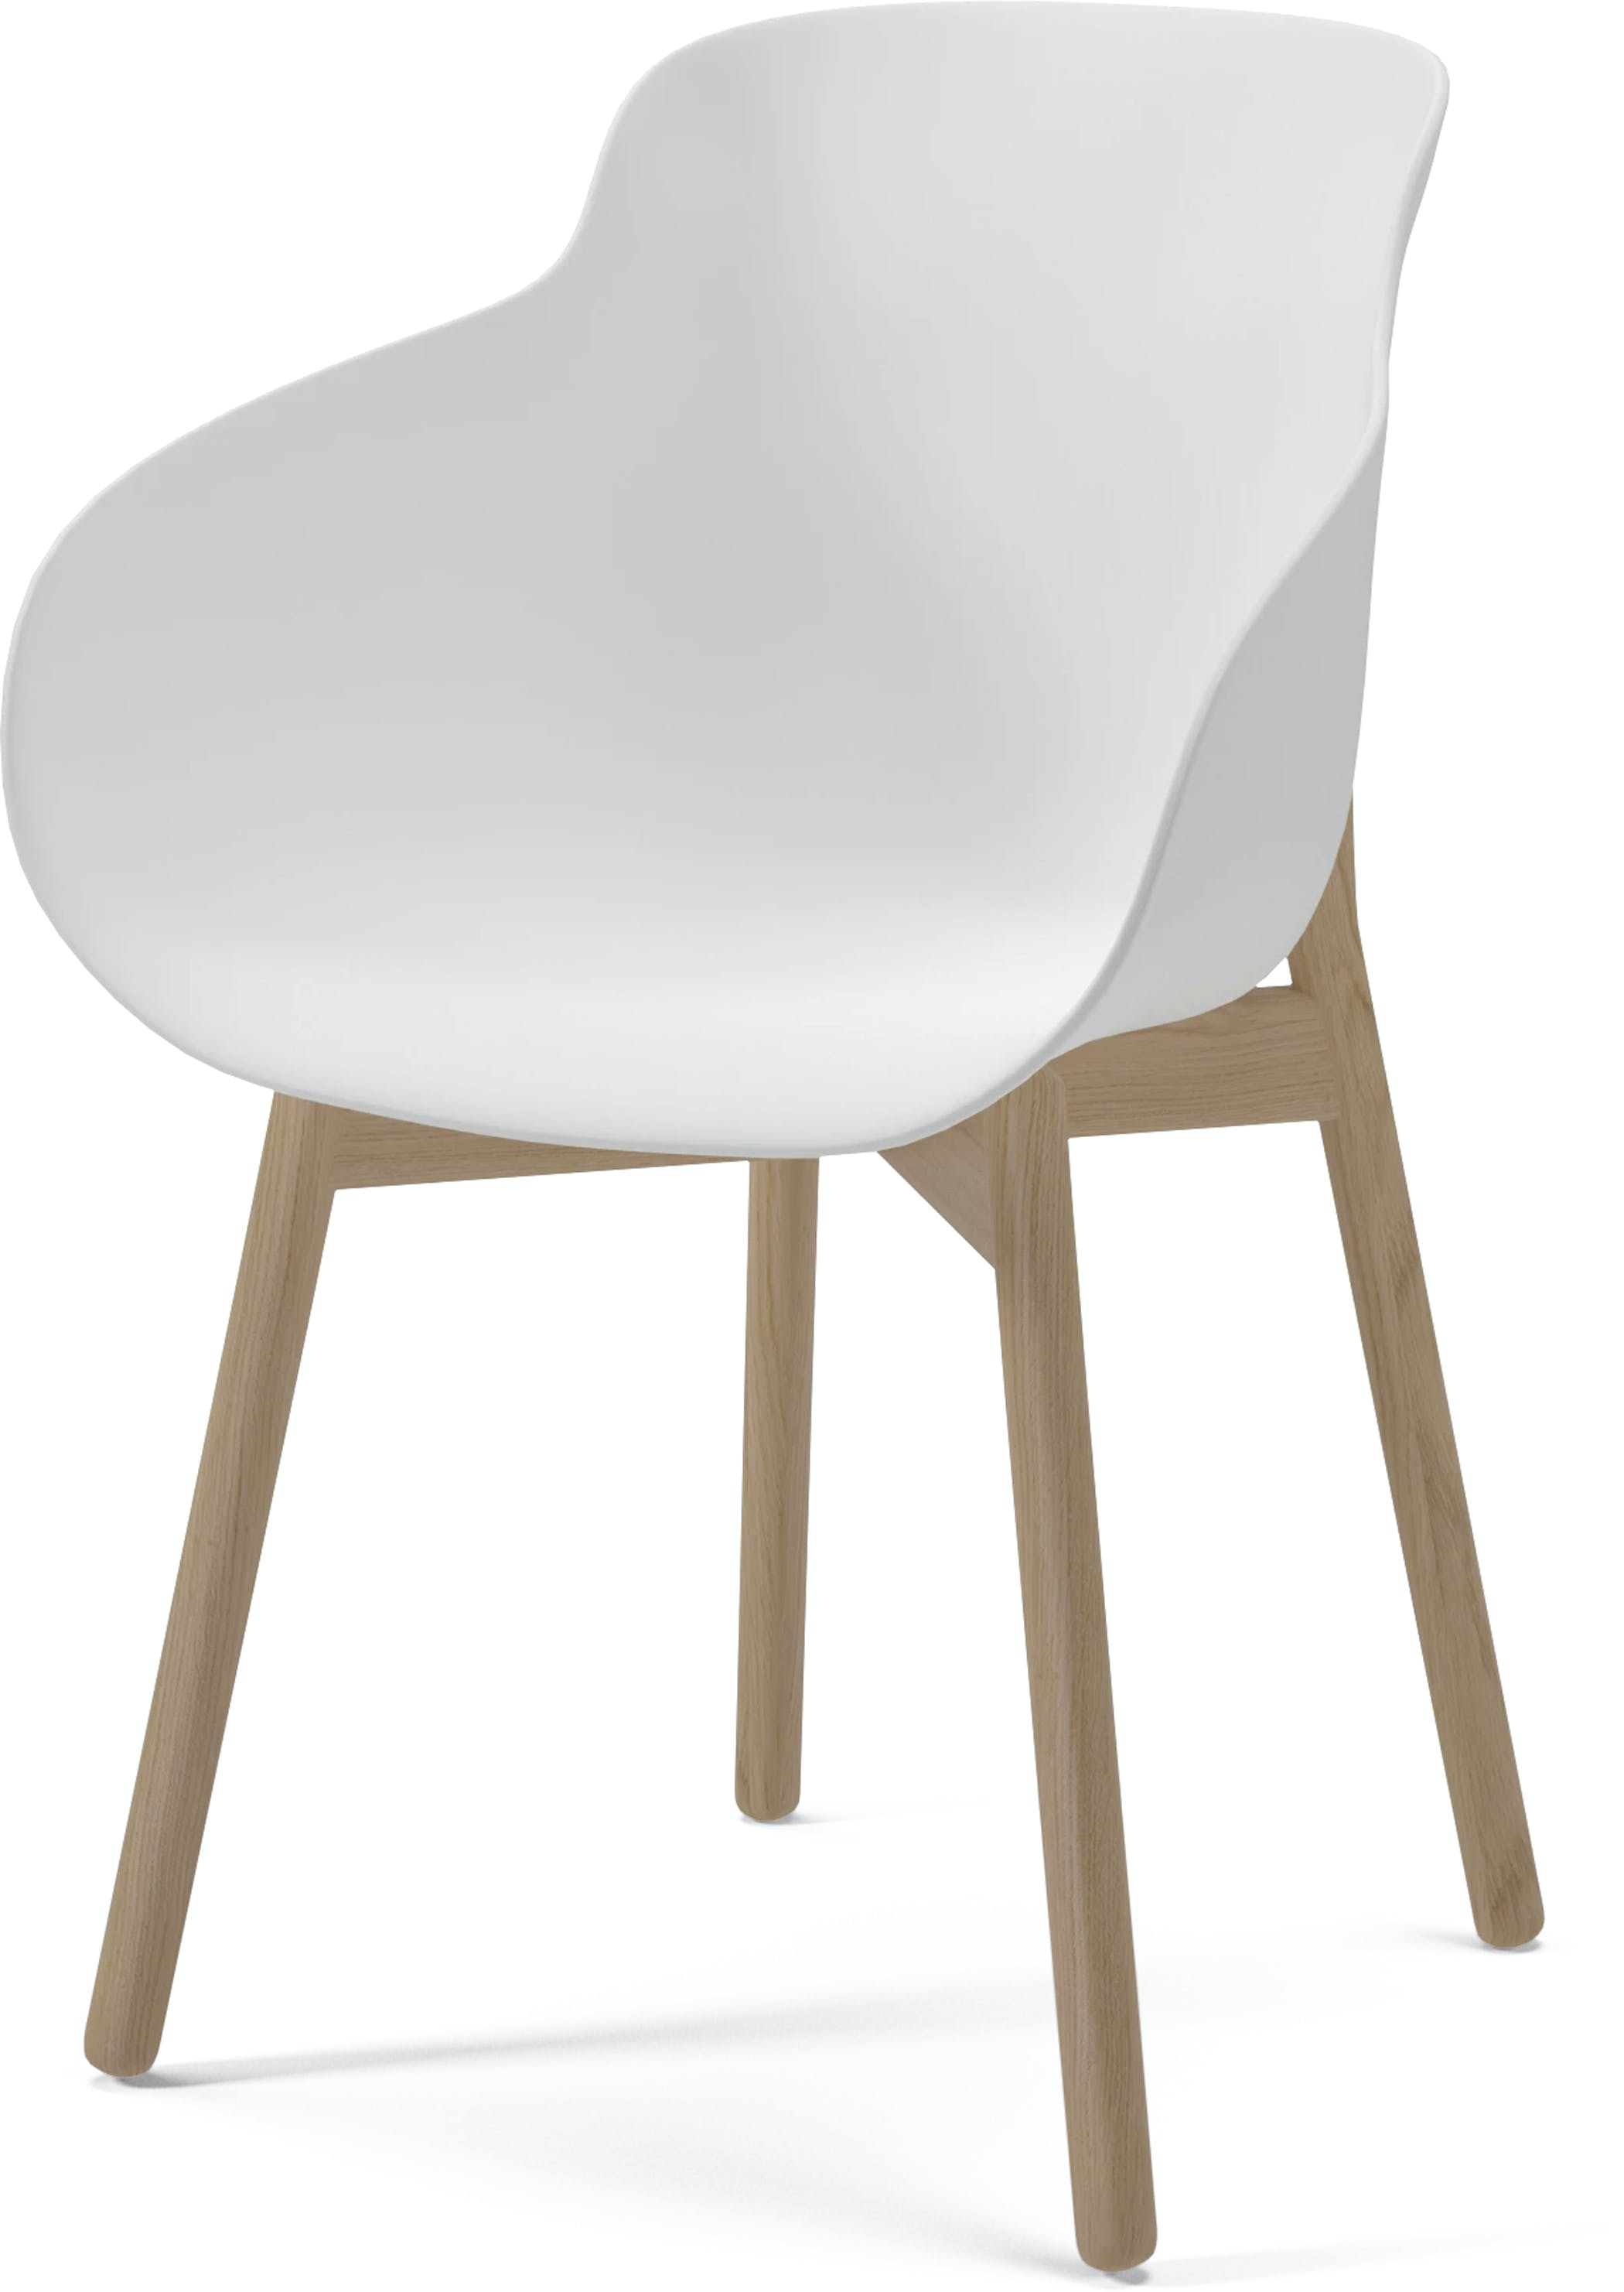 Hug Dining Chair 5